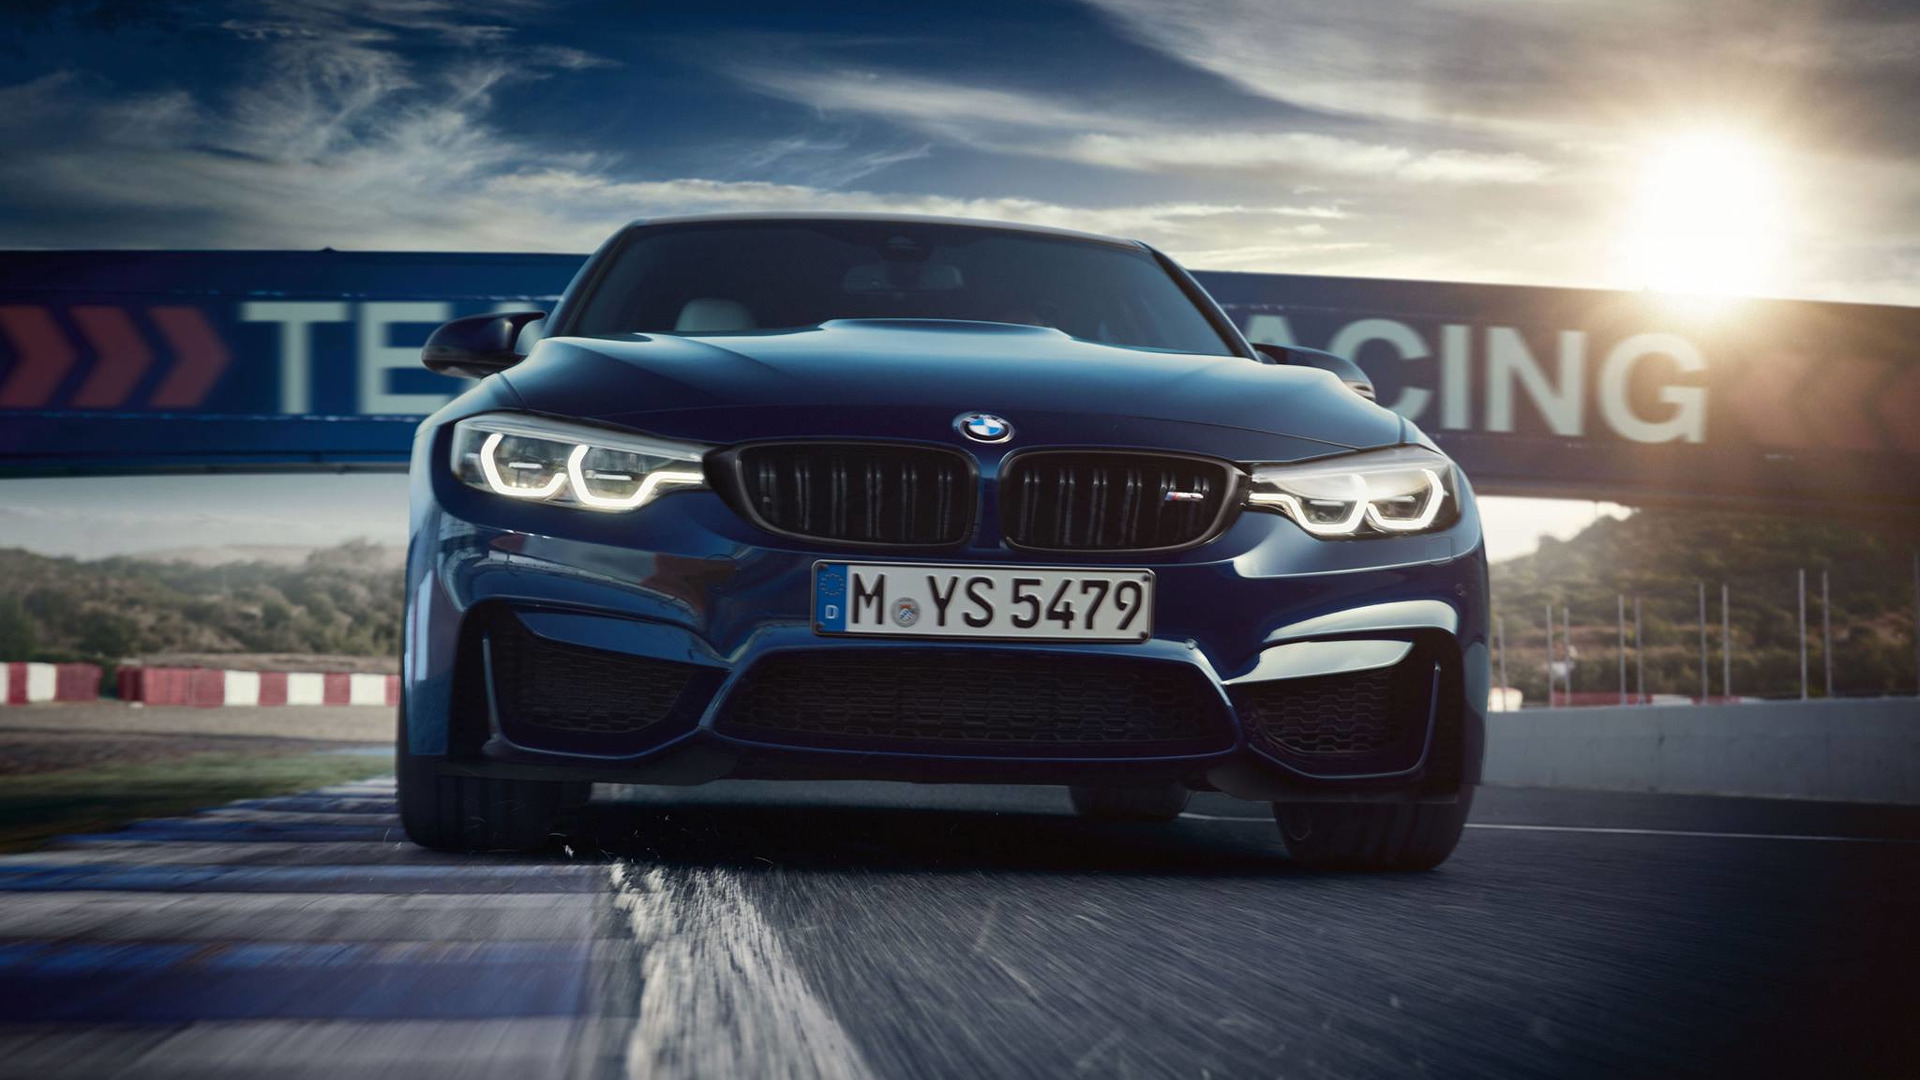 2018 bmw m3 revealed with discreet facelift. Black Bedroom Furniture Sets. Home Design Ideas